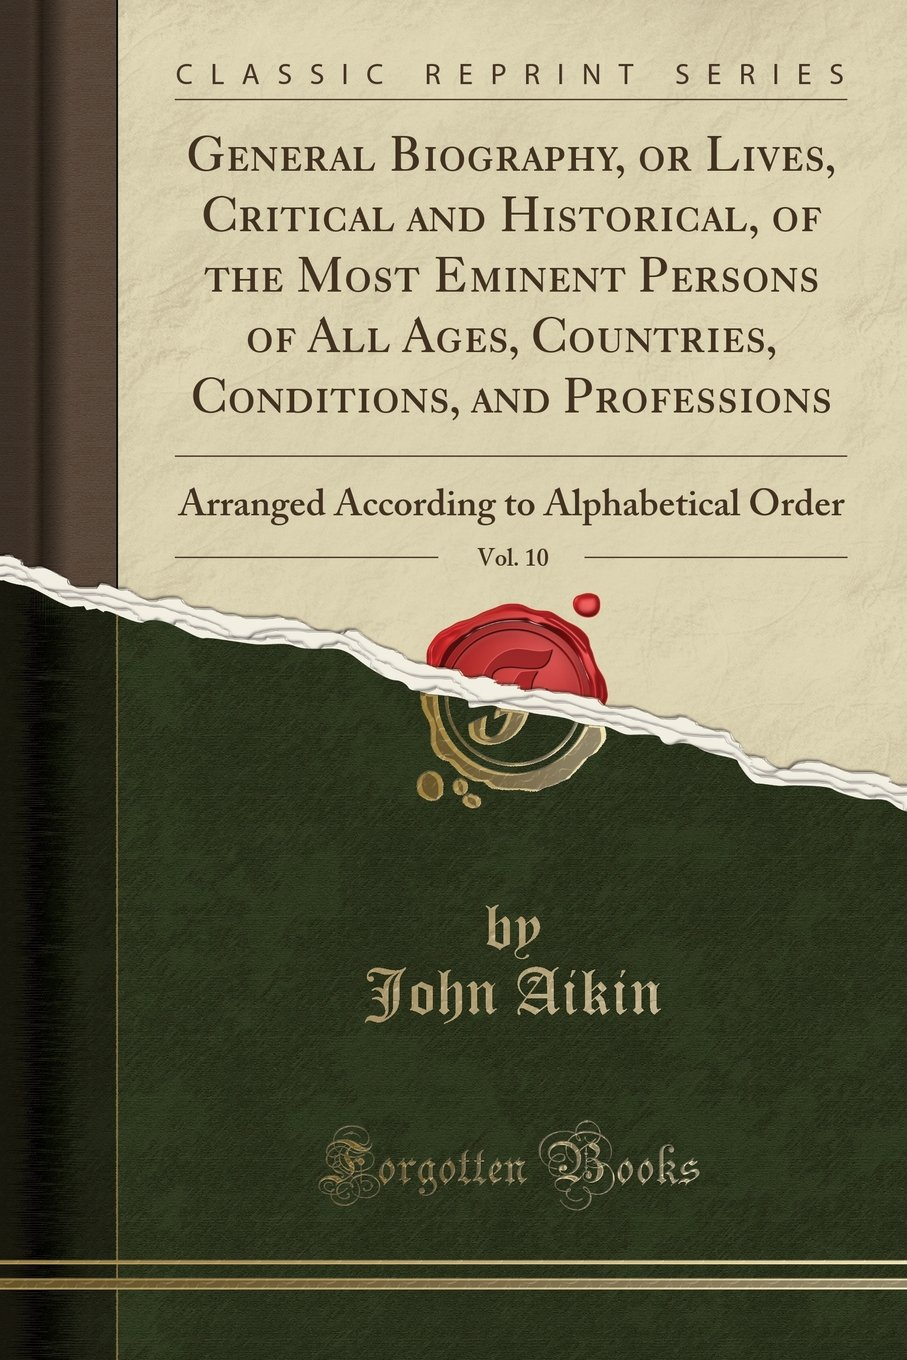 Download General Biography, or Lives, Critical and Historical, of the Most Eminent Persons of All Ages, Countries, Conditions, and Professions, Vol. 10: ... to Alphabetical Order (Classic Reprint) PDF